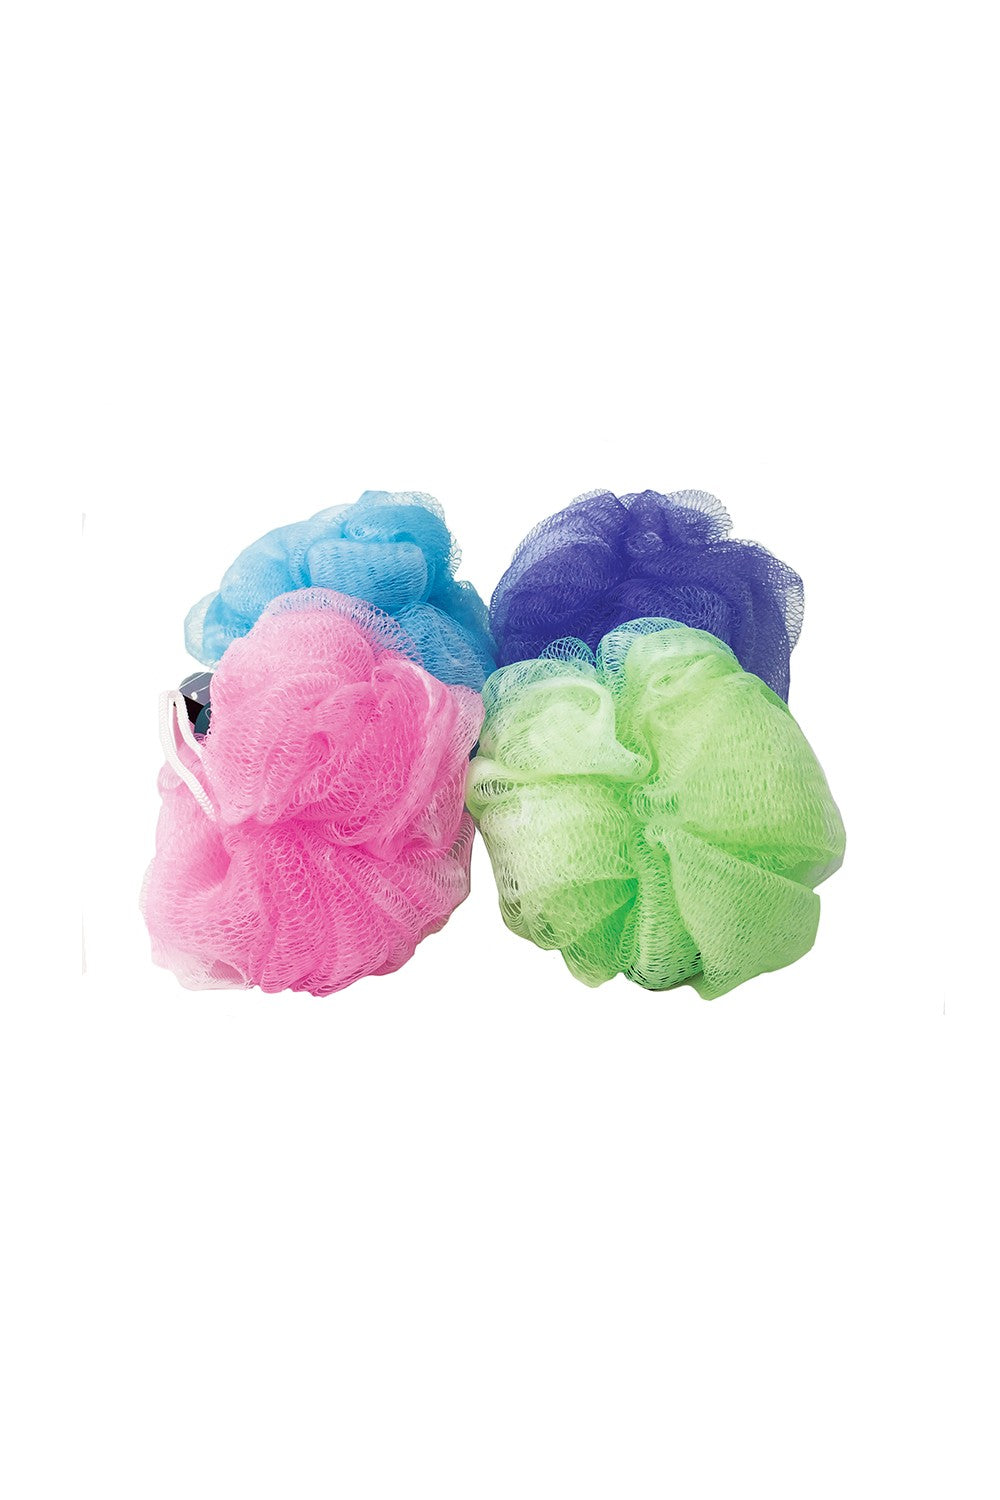 Loofah Bath Sponges